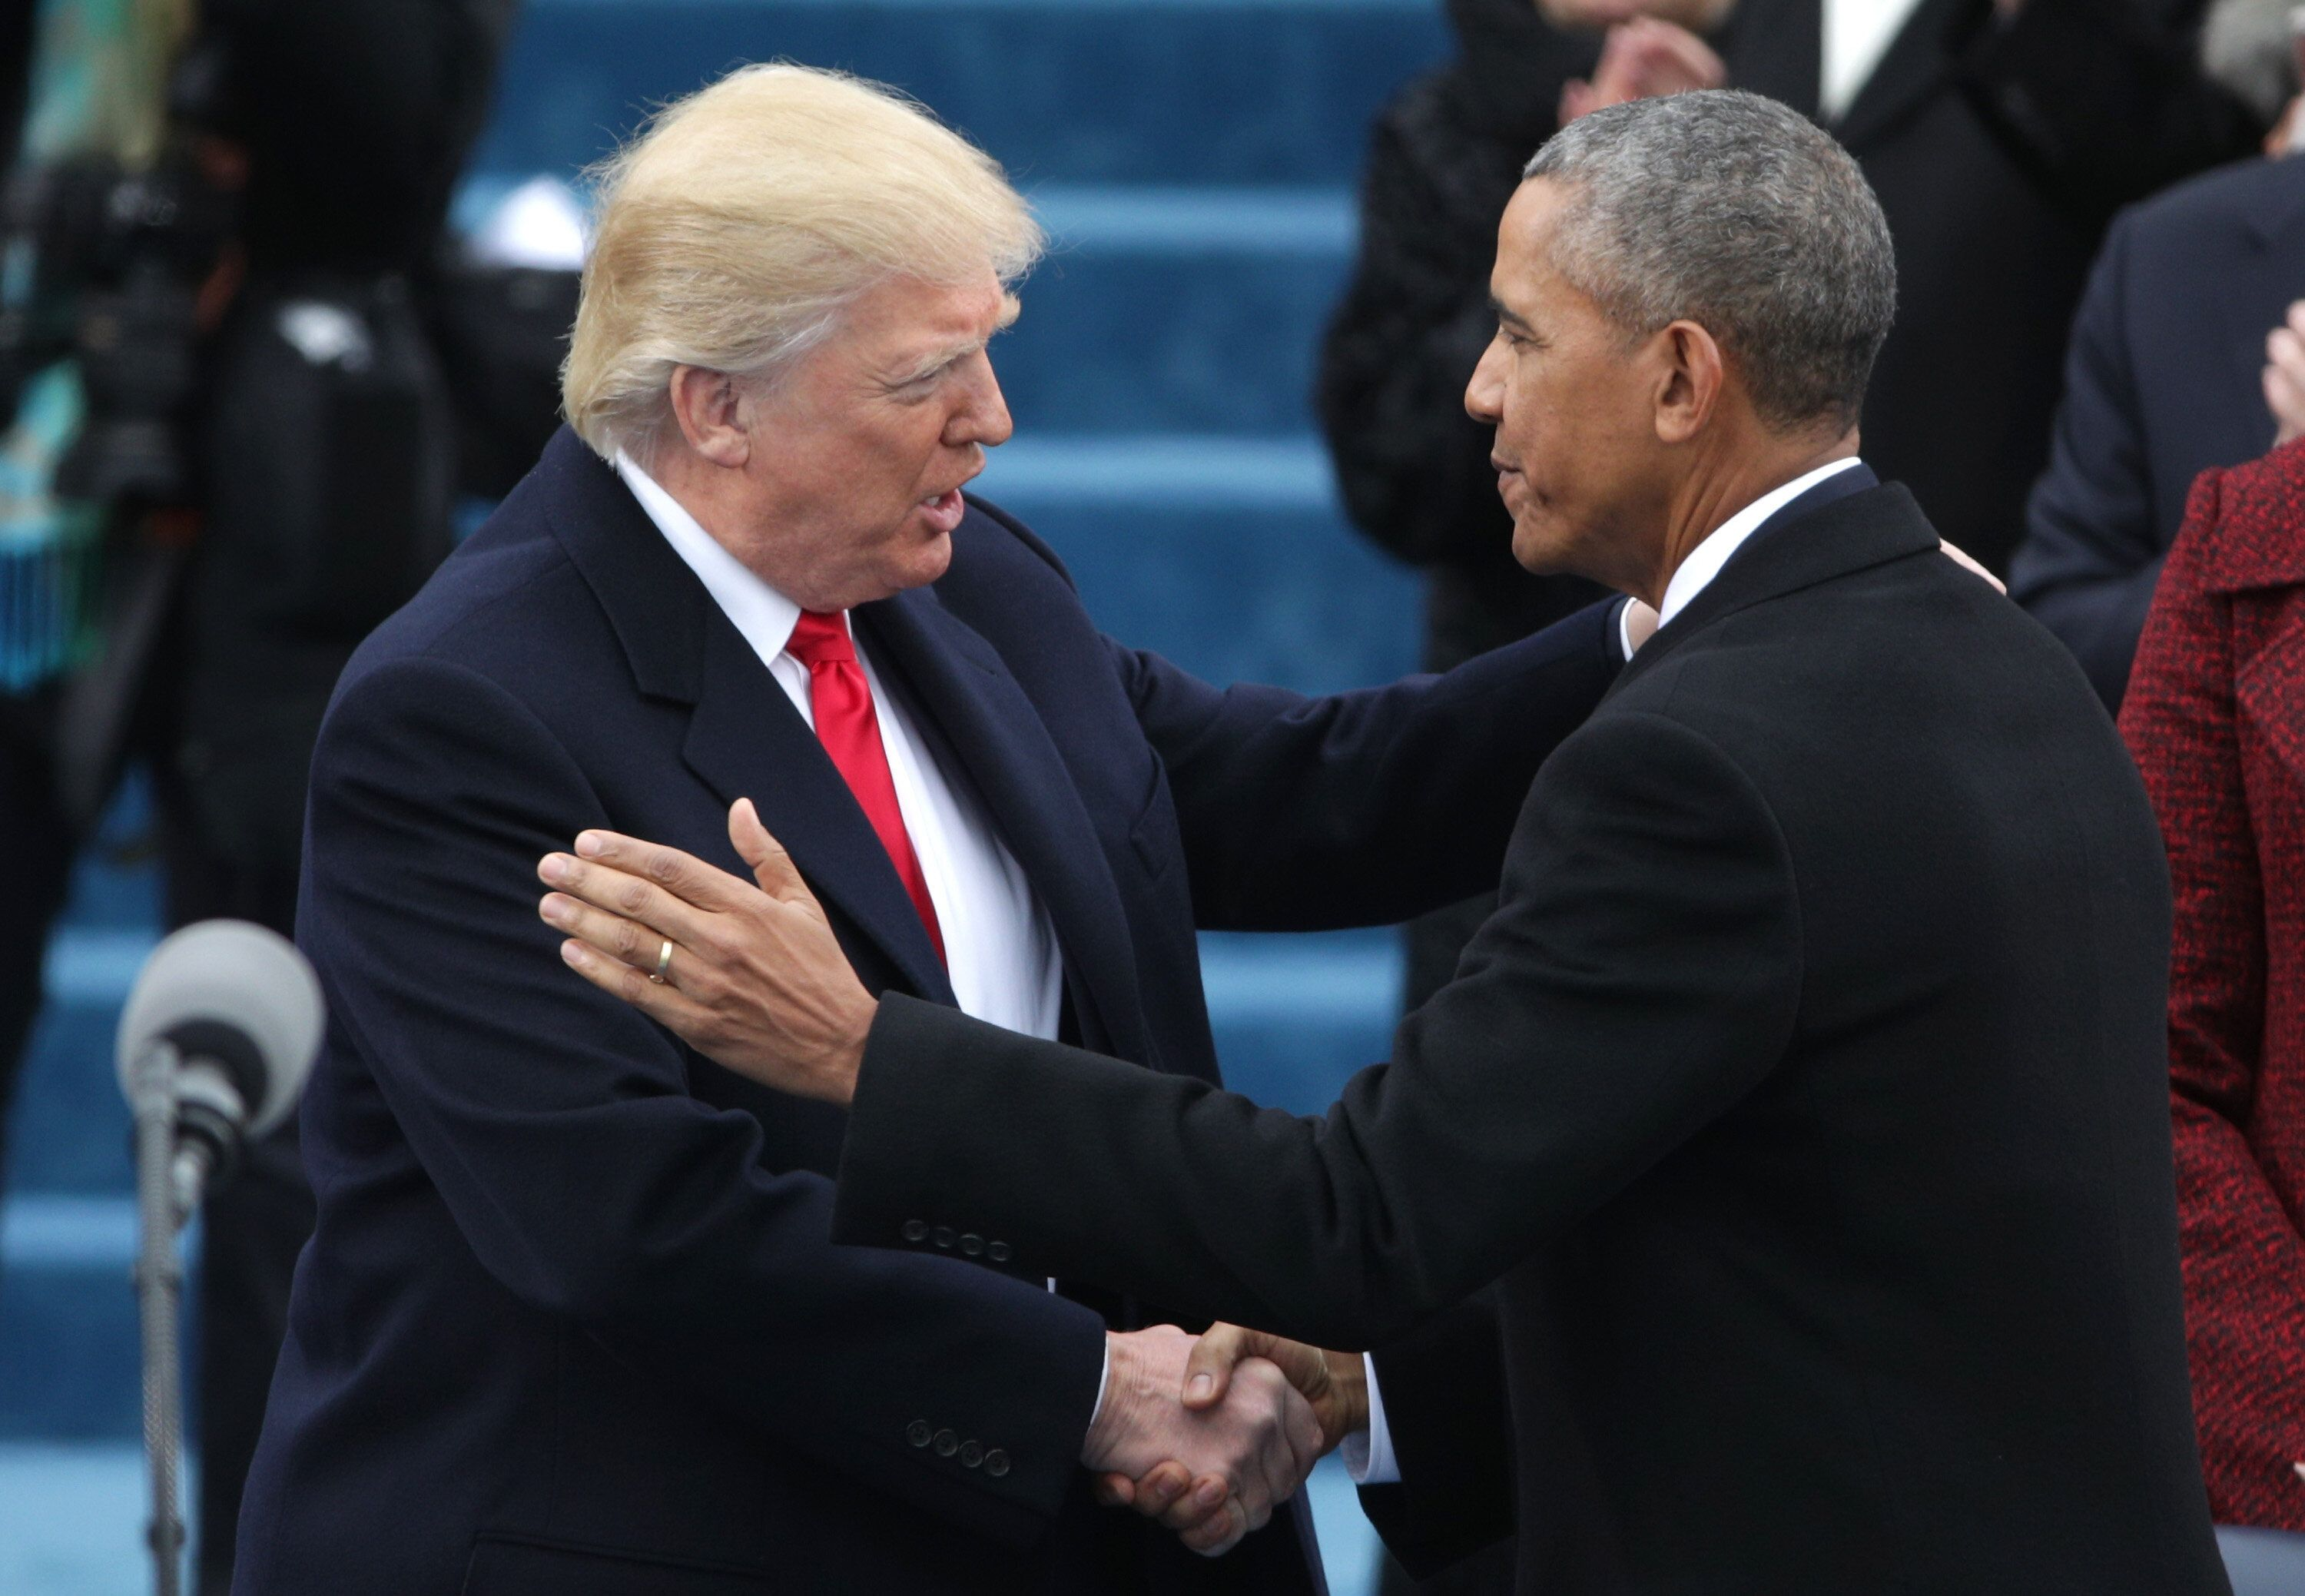 WASHINGTON, DC - JANUARY 20:  President Barack Obama (R) greets President Elect Donald Trump on the West Front of the U.S. Capitol on January 20, 2017 in Washington, DC. In today's inauguration ceremony Donald J. Trump becomes the 45th president of the United States.  (Photo by Alex Wong/Getty Images)